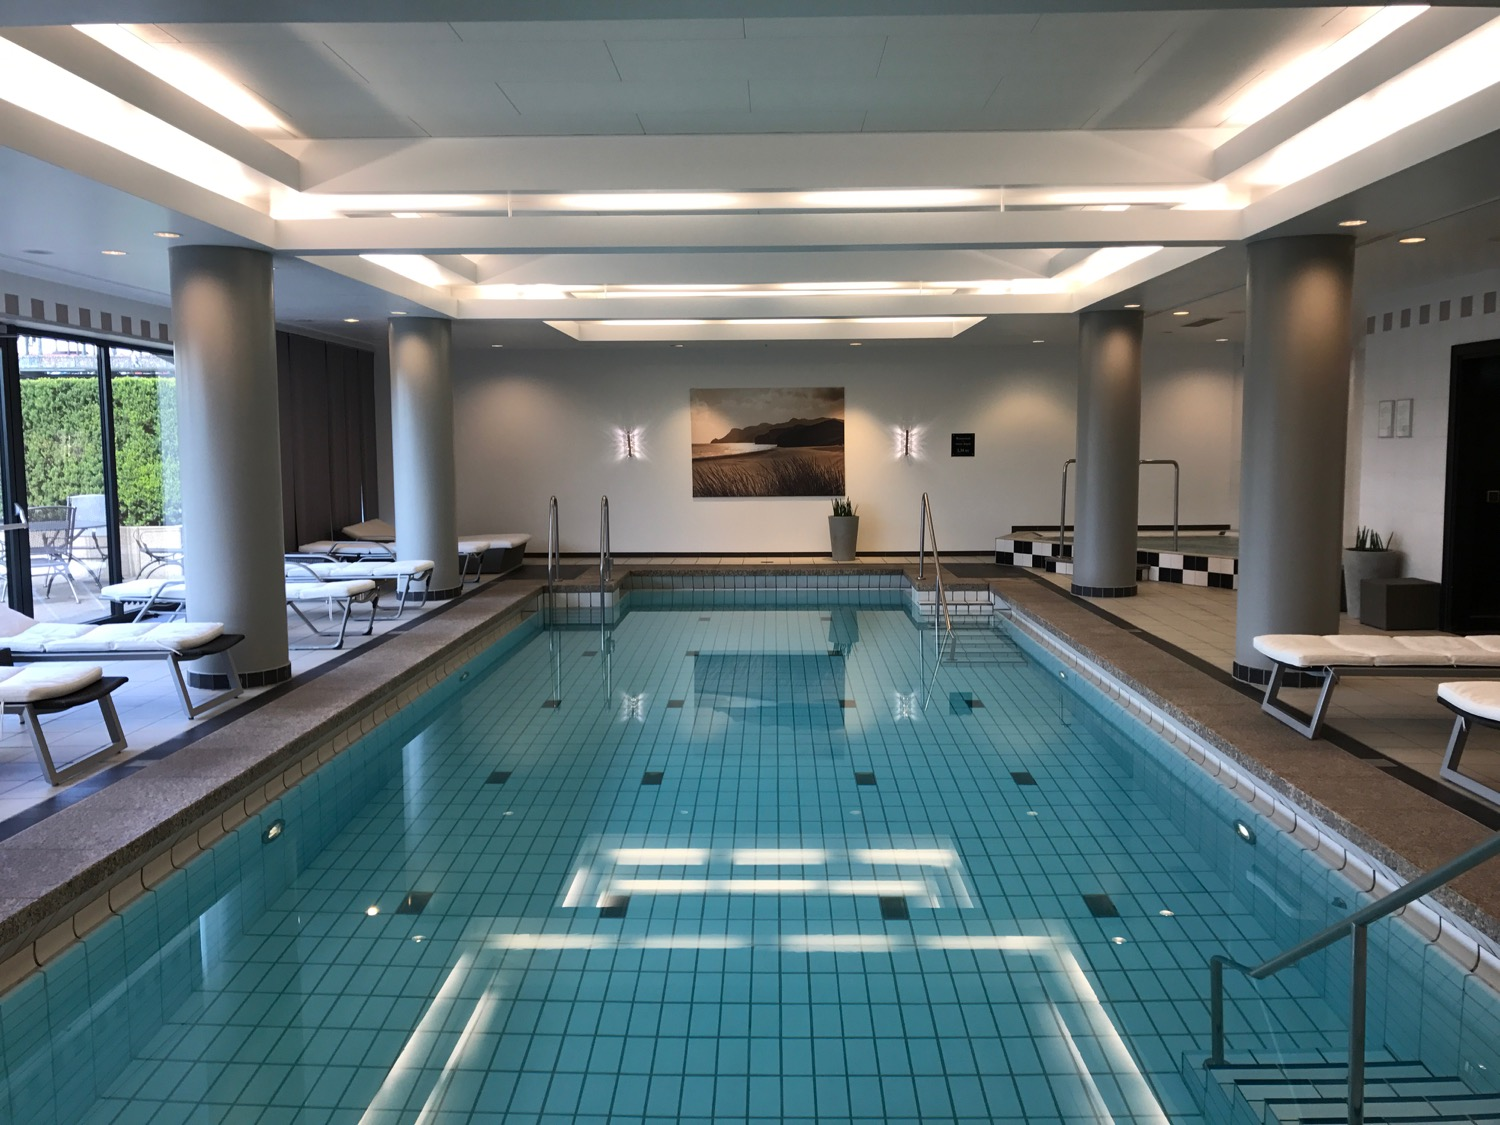 Cash Pool Frankfurt Hauptbahnhof Review Hyatt Regency Cologne Live And Let S Fly